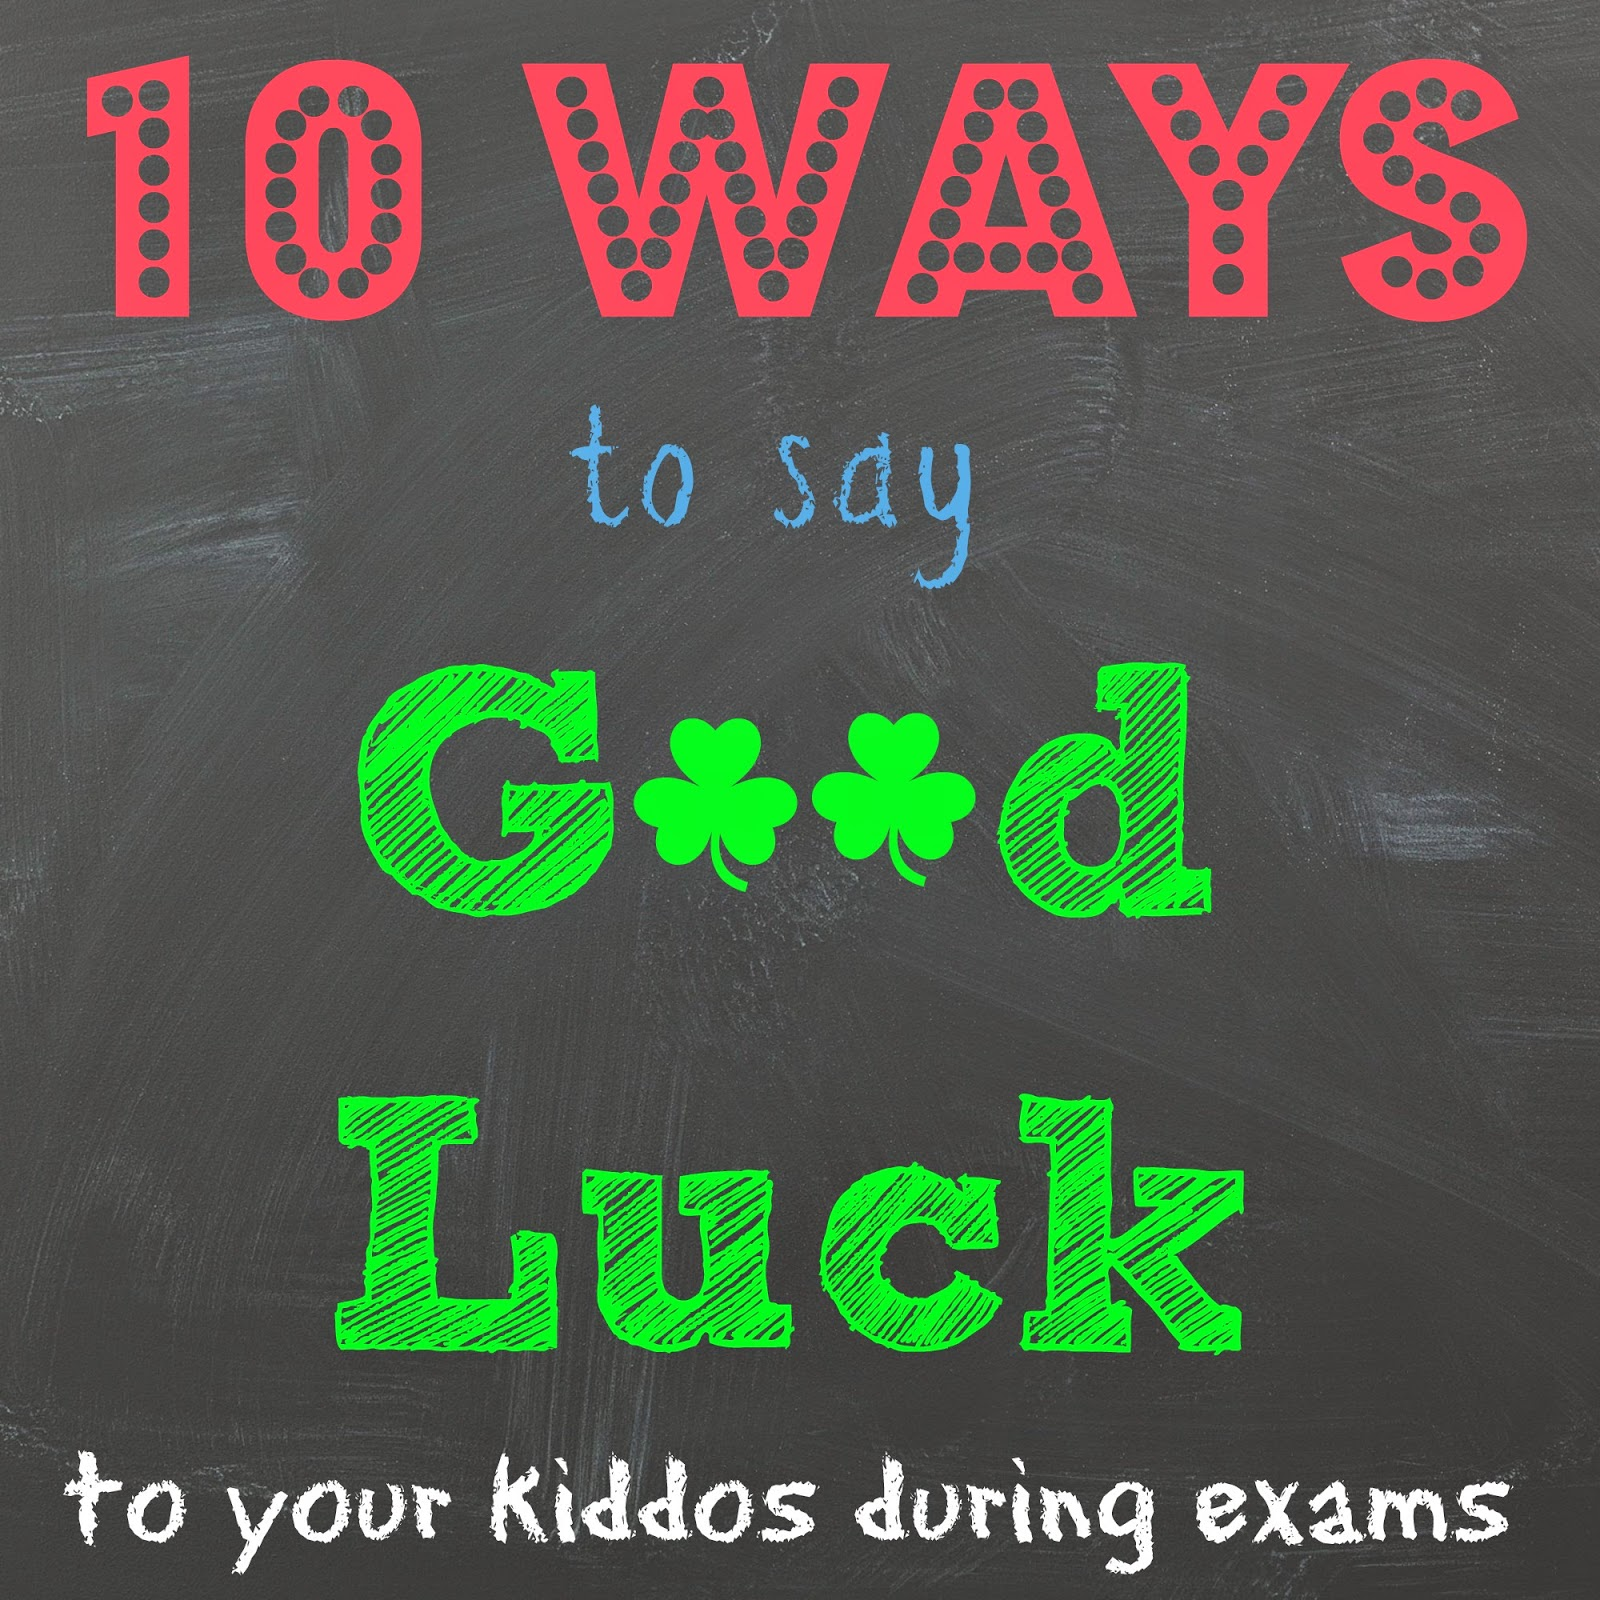 Good Luck On Your Exam Quotes: Test Taking Quotes Good Luck. QuotesGram